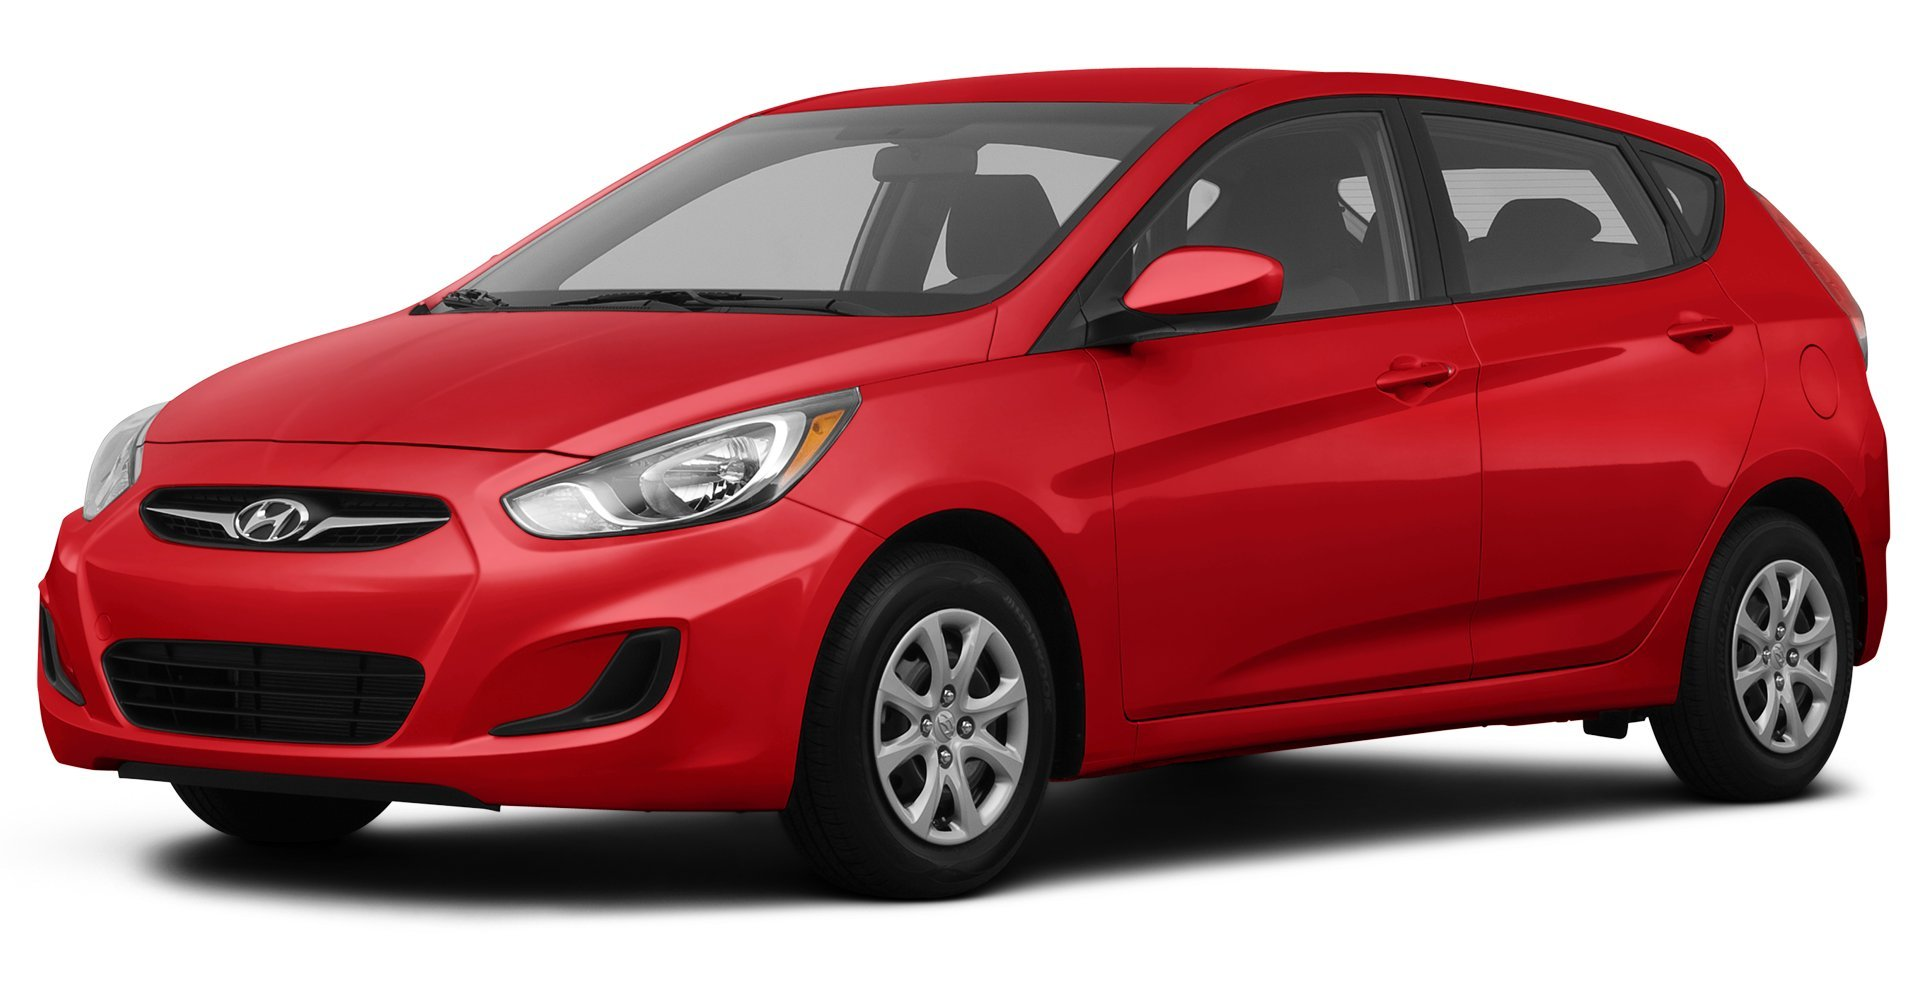 2012 hyundai accent reviews images and specs. Black Bedroom Furniture Sets. Home Design Ideas